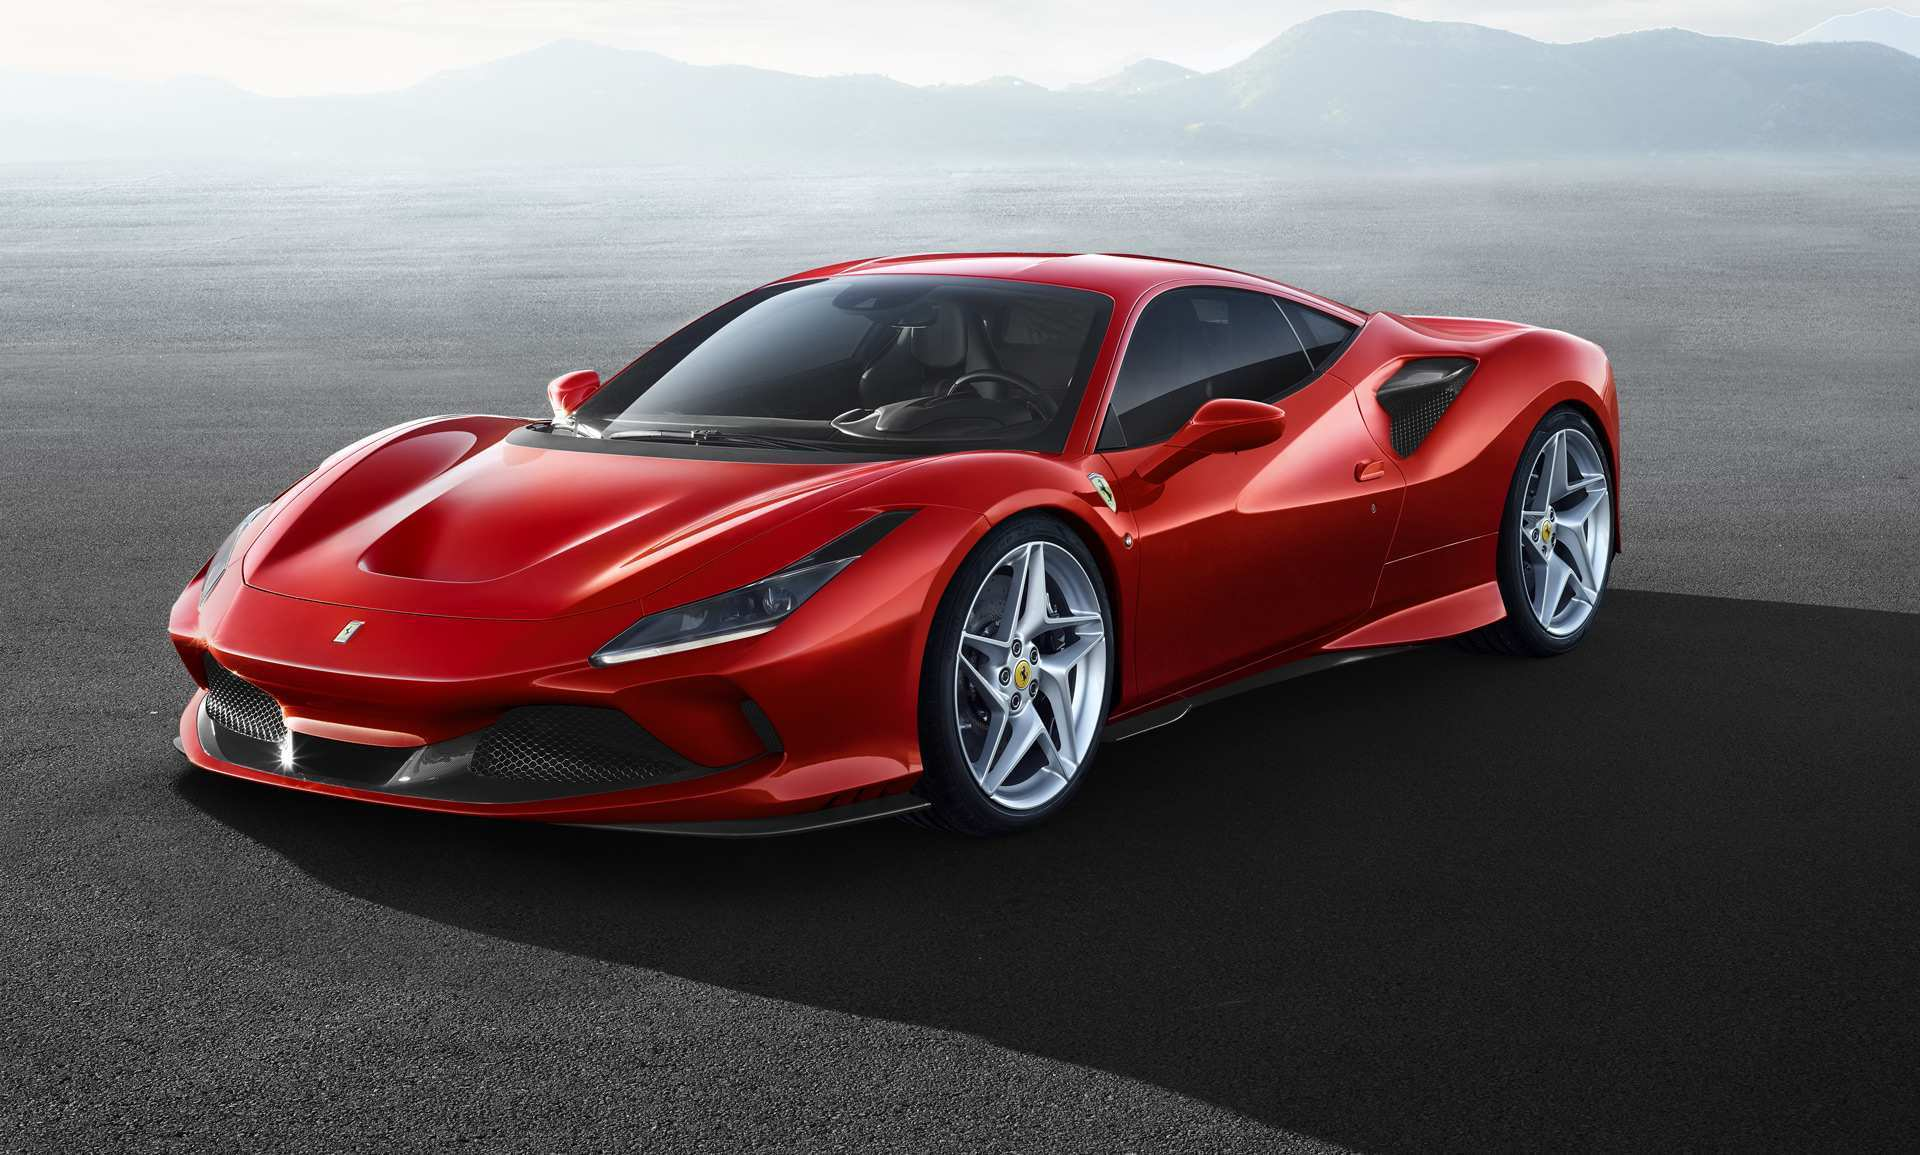 71 A 2019 Ferrari Models Price And Release Date